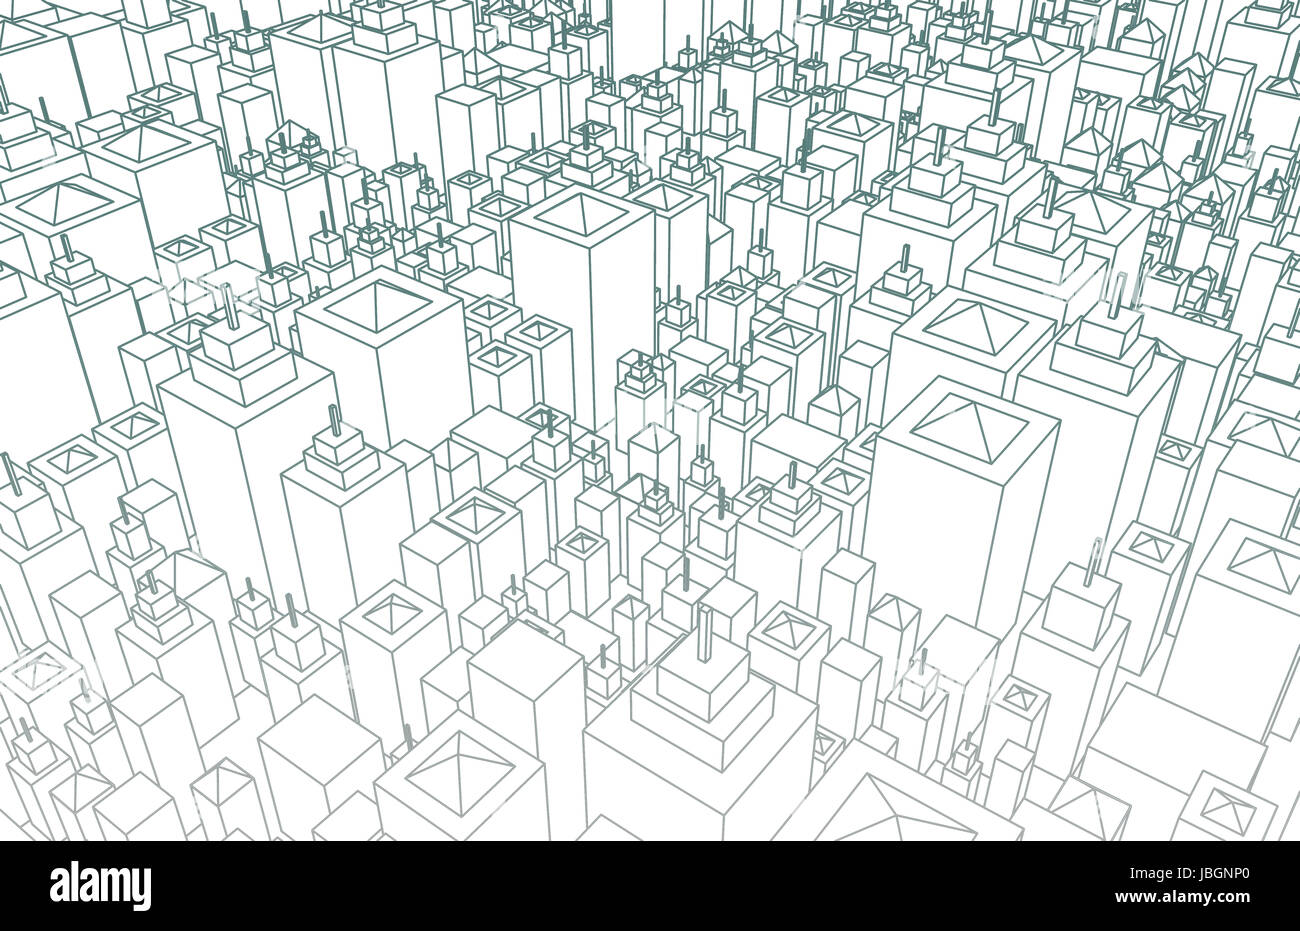 Wireframe city with buildings and blueprint design art stock photo wireframe city with buildings and blueprint design art malvernweather Image collections